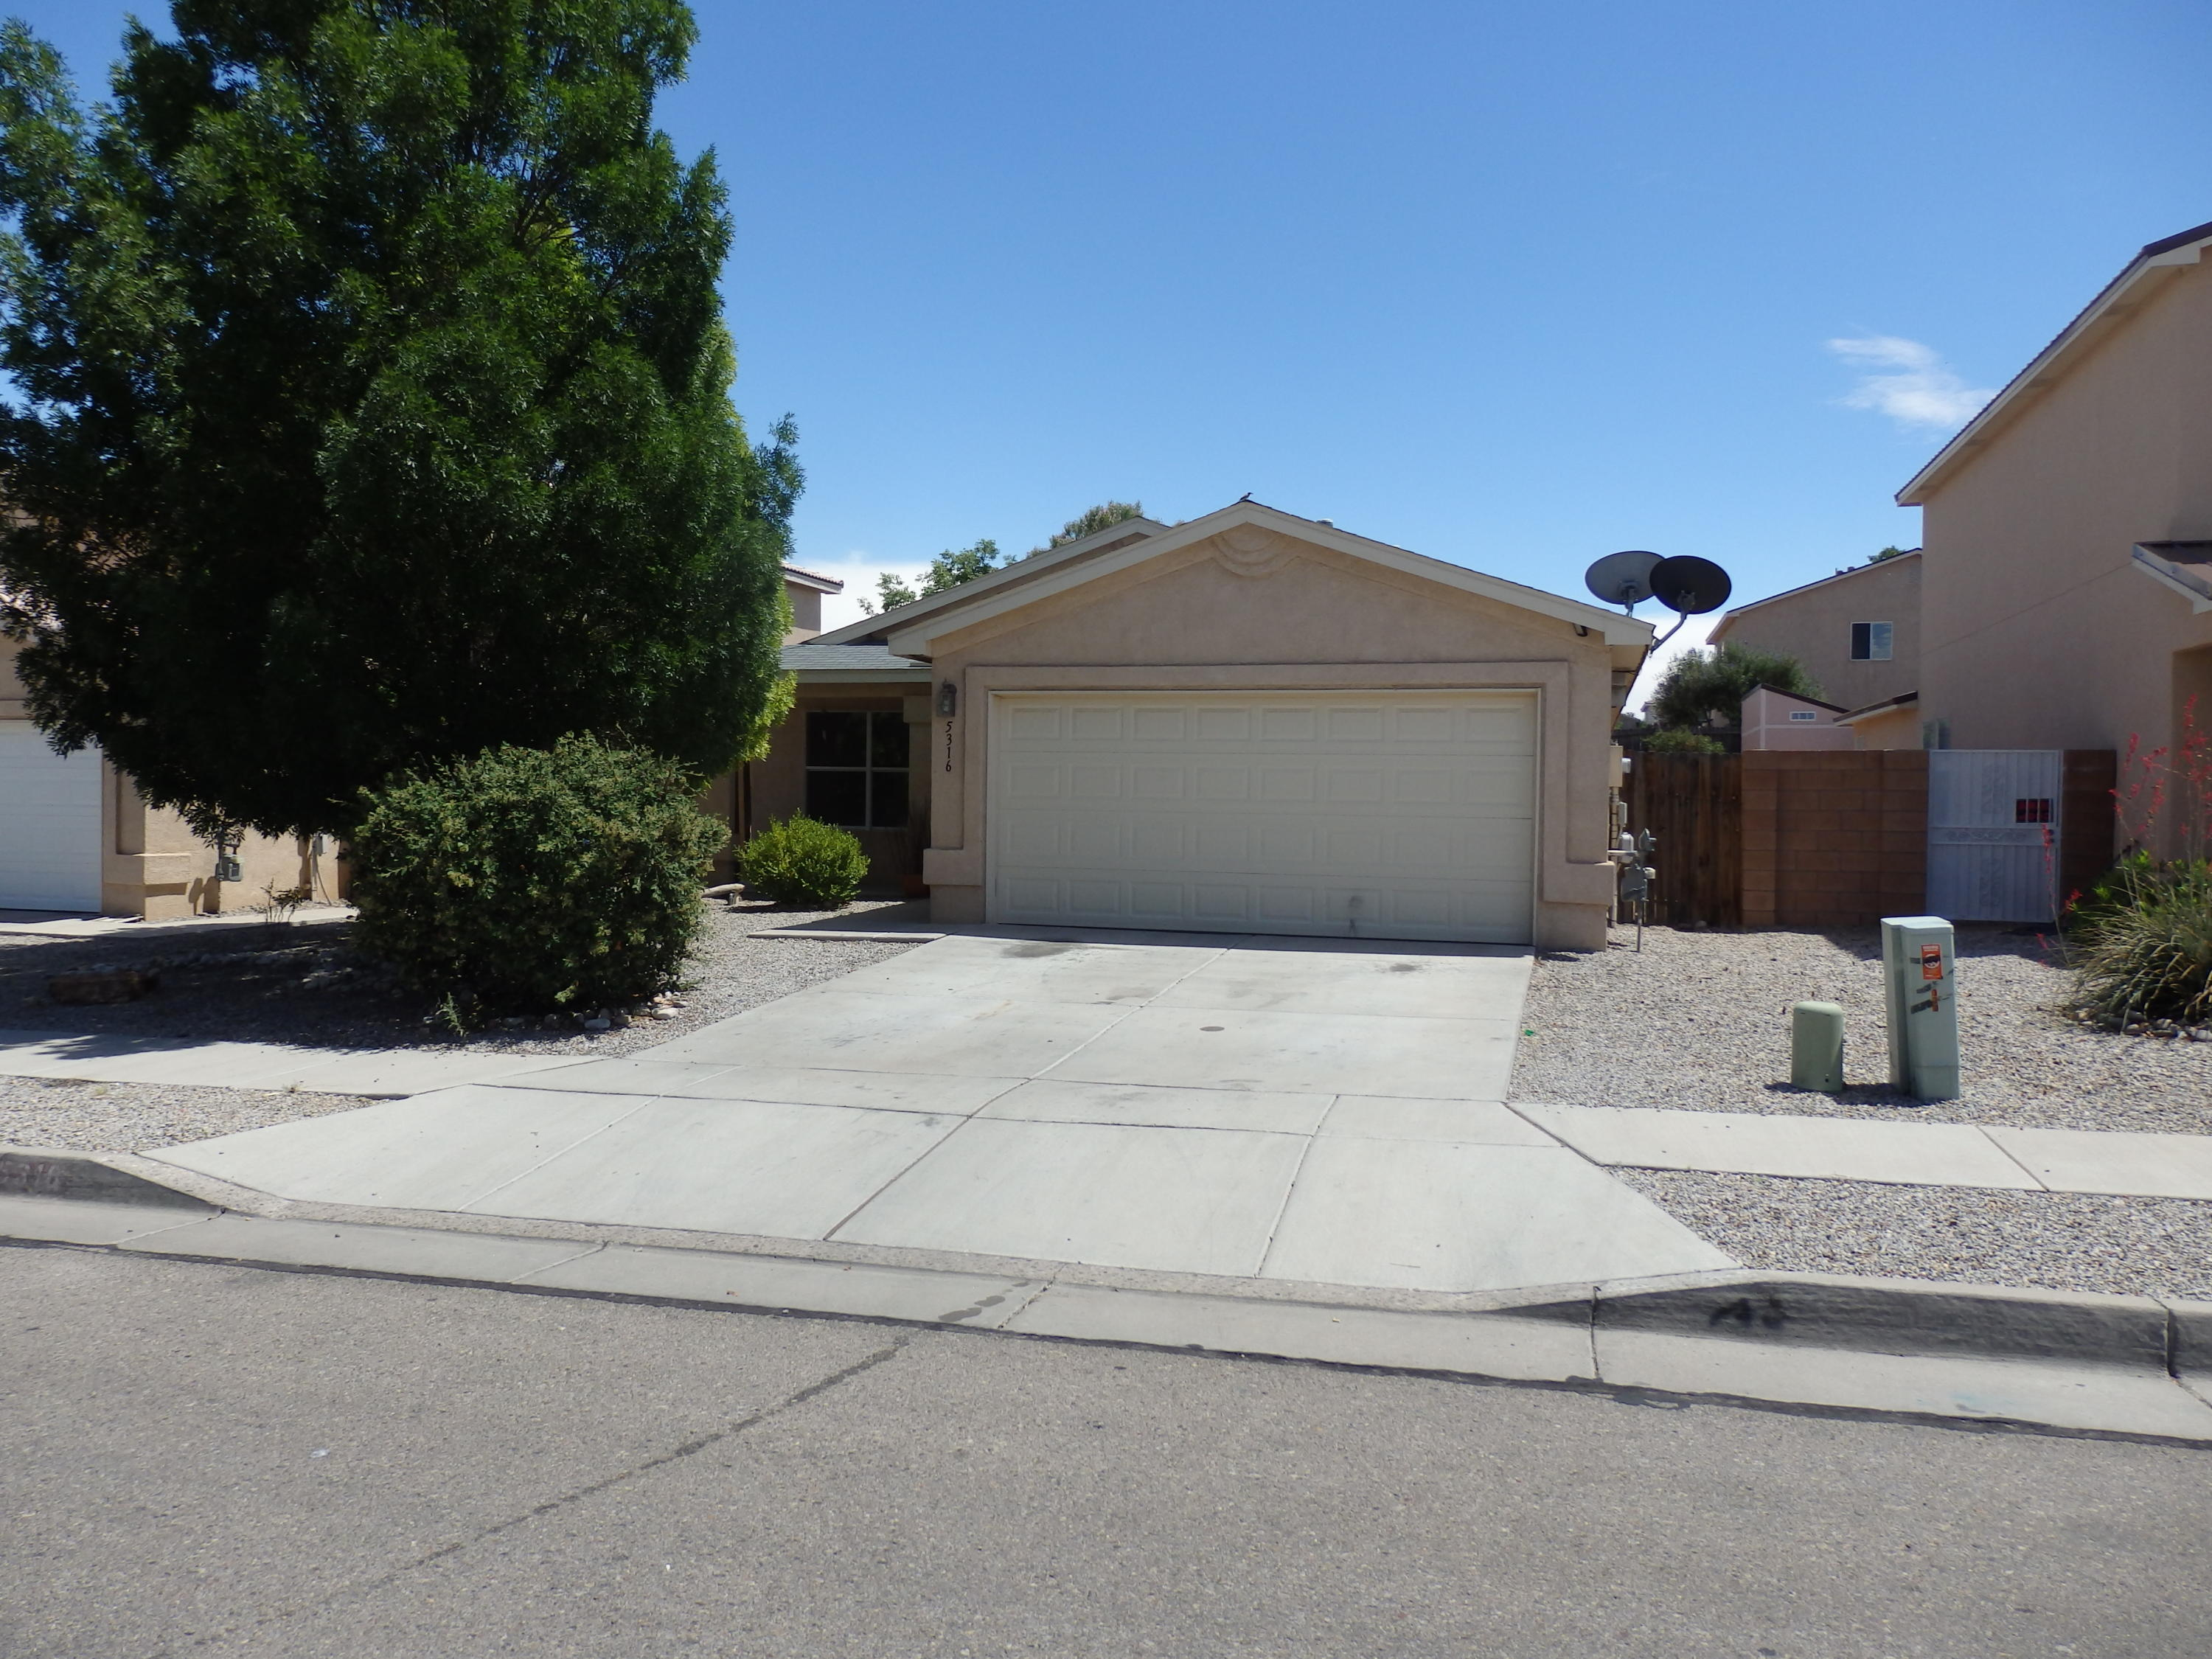 Opportunity knocks for this 4 Bedroom in Stonebridge with a community pool. Extended Patio 18x15. Needs some TLC. Light and bright with open floor plan. Cool backyard. Walking Trails, Cottonwood Mall, Rust Pres. Hospital and Medical Offices all close by.